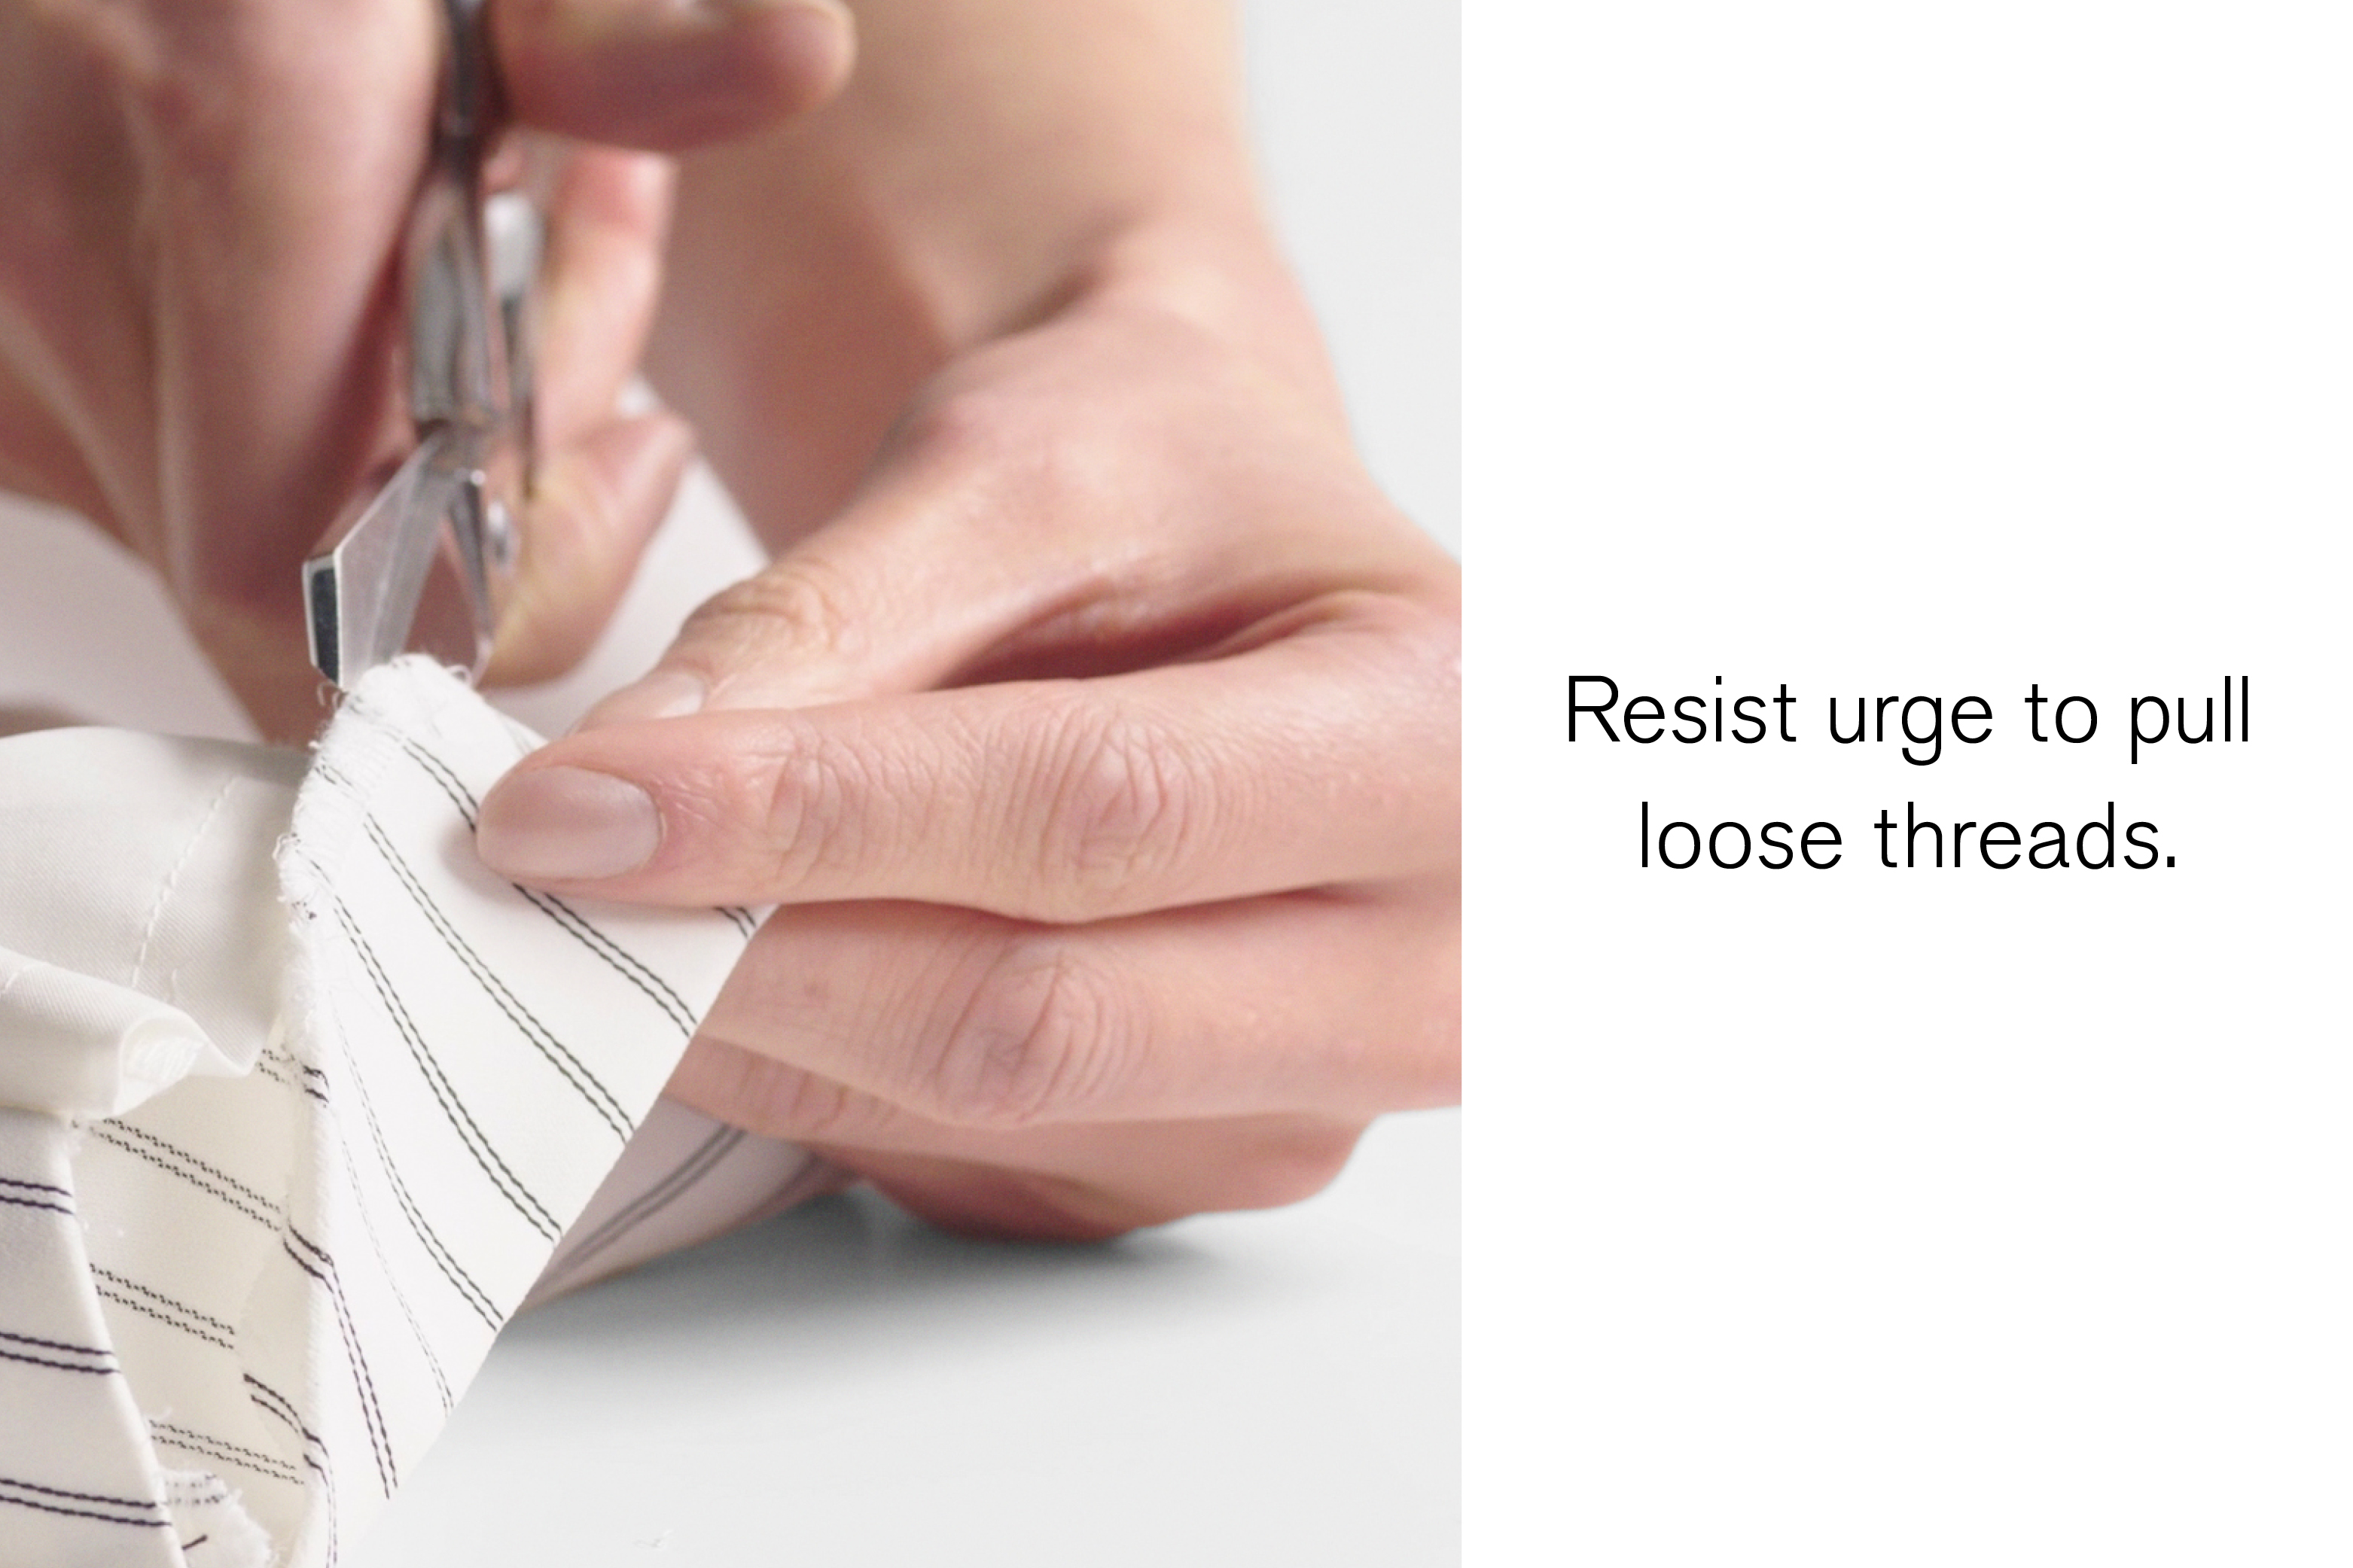 resist-urge-to-pull-loose-threads